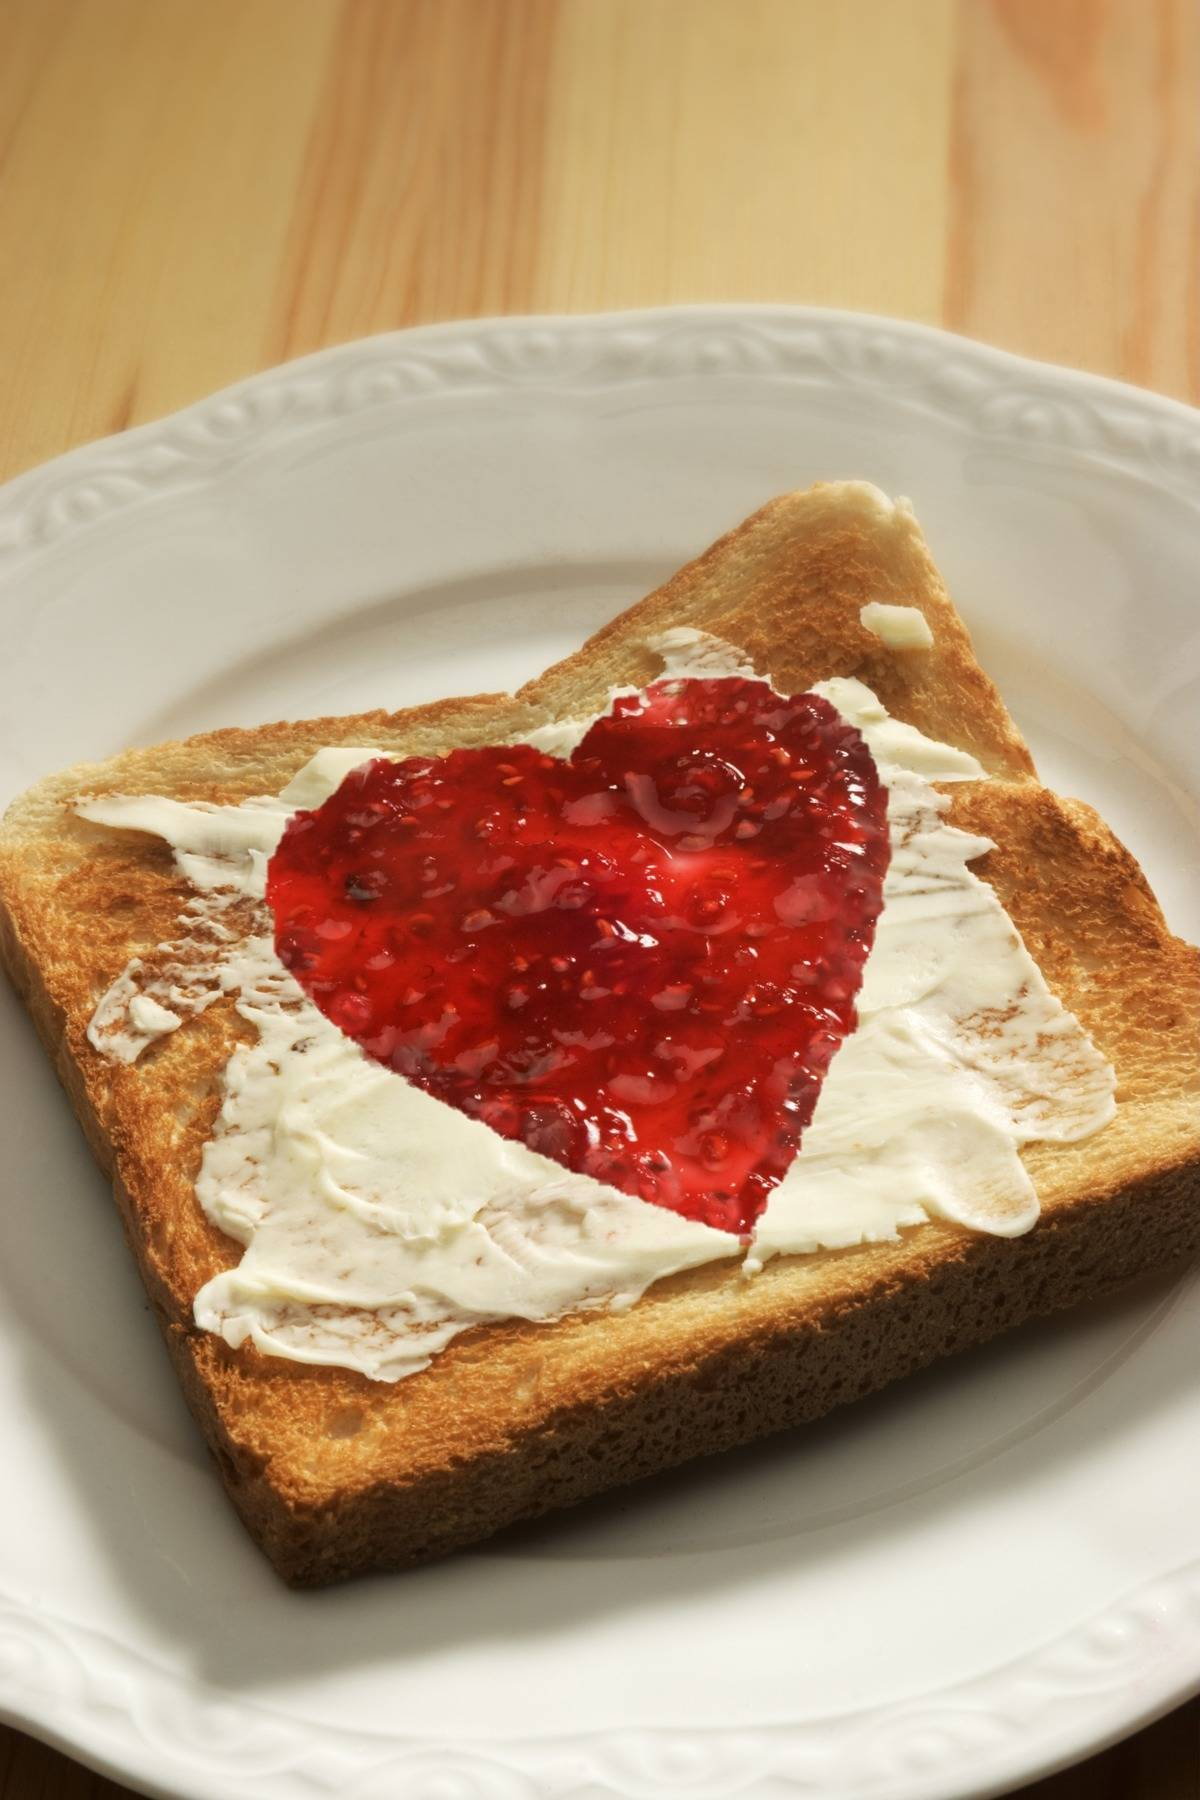 Toast is topped with butter and jelly shaped like a heart.